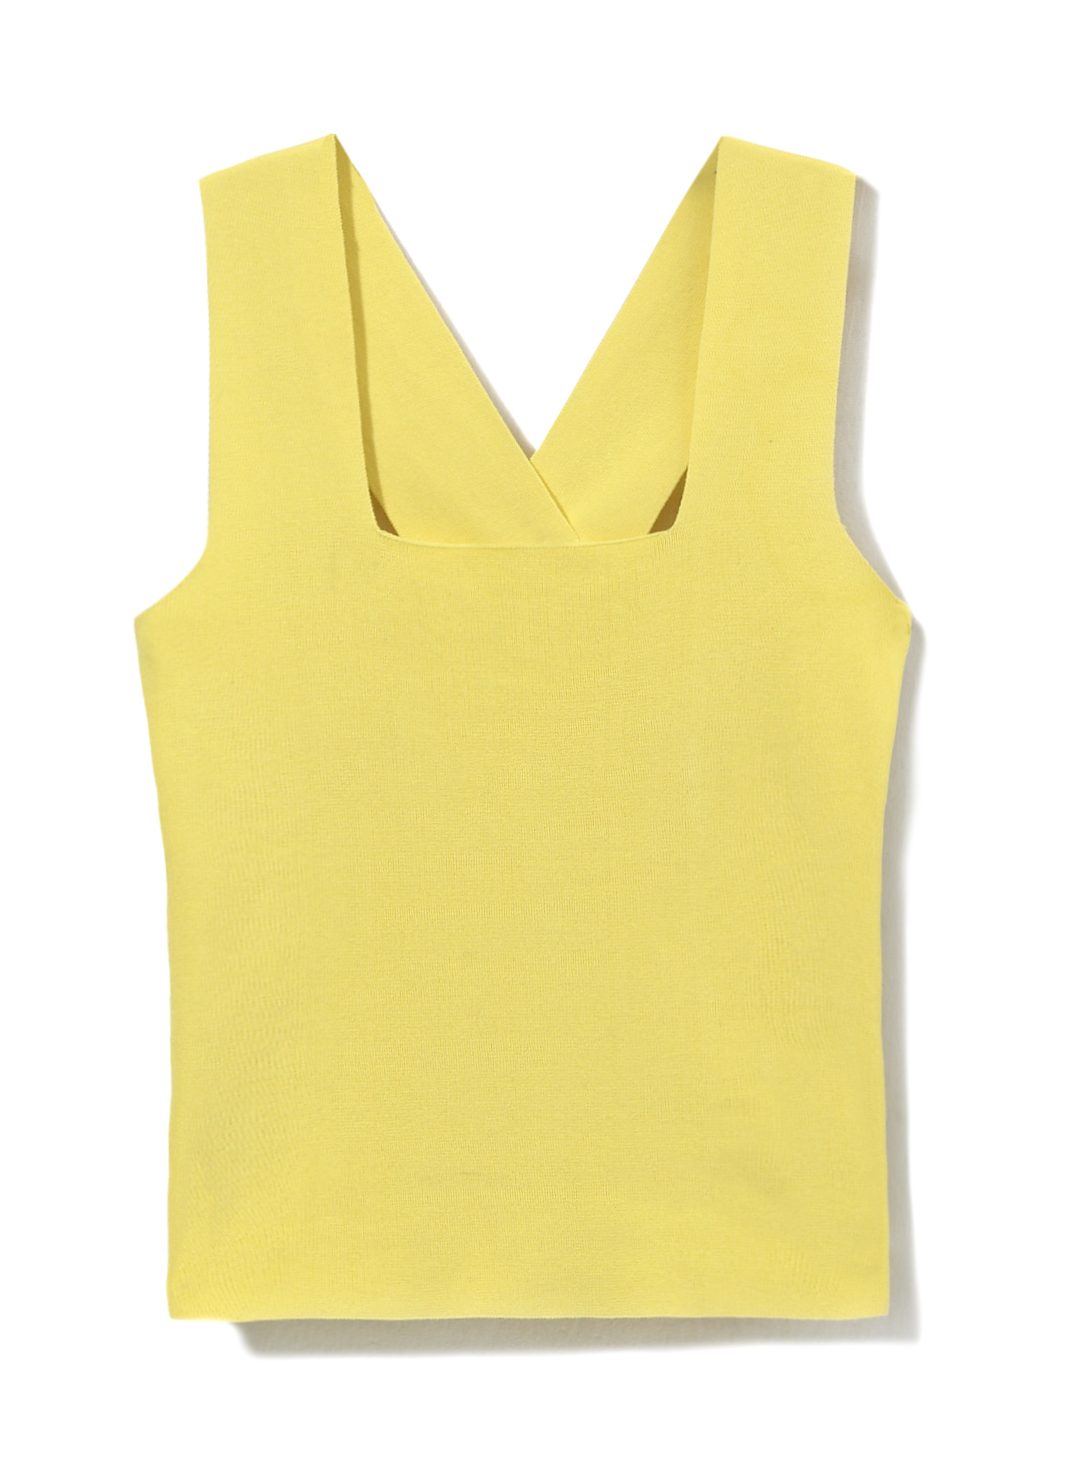 Yellow top with a square neckline